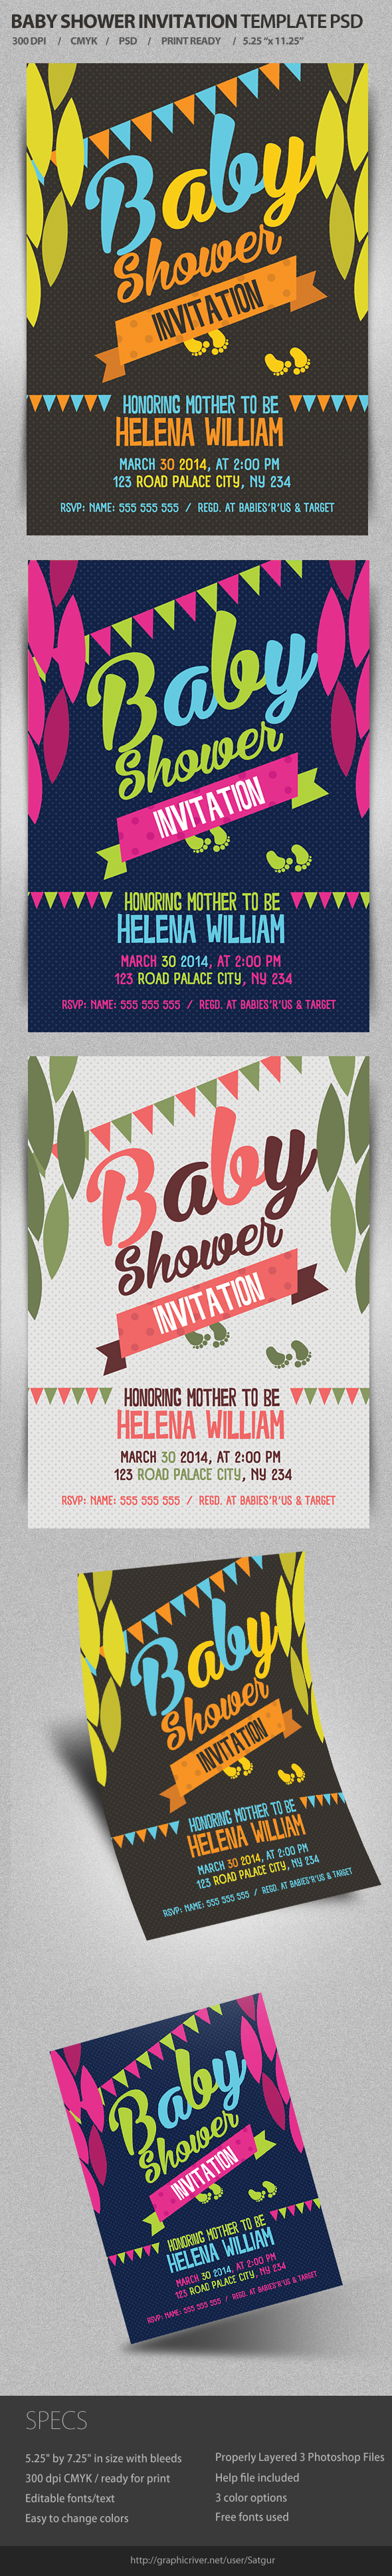 Baby Shower Invitation Template Psd On Behance